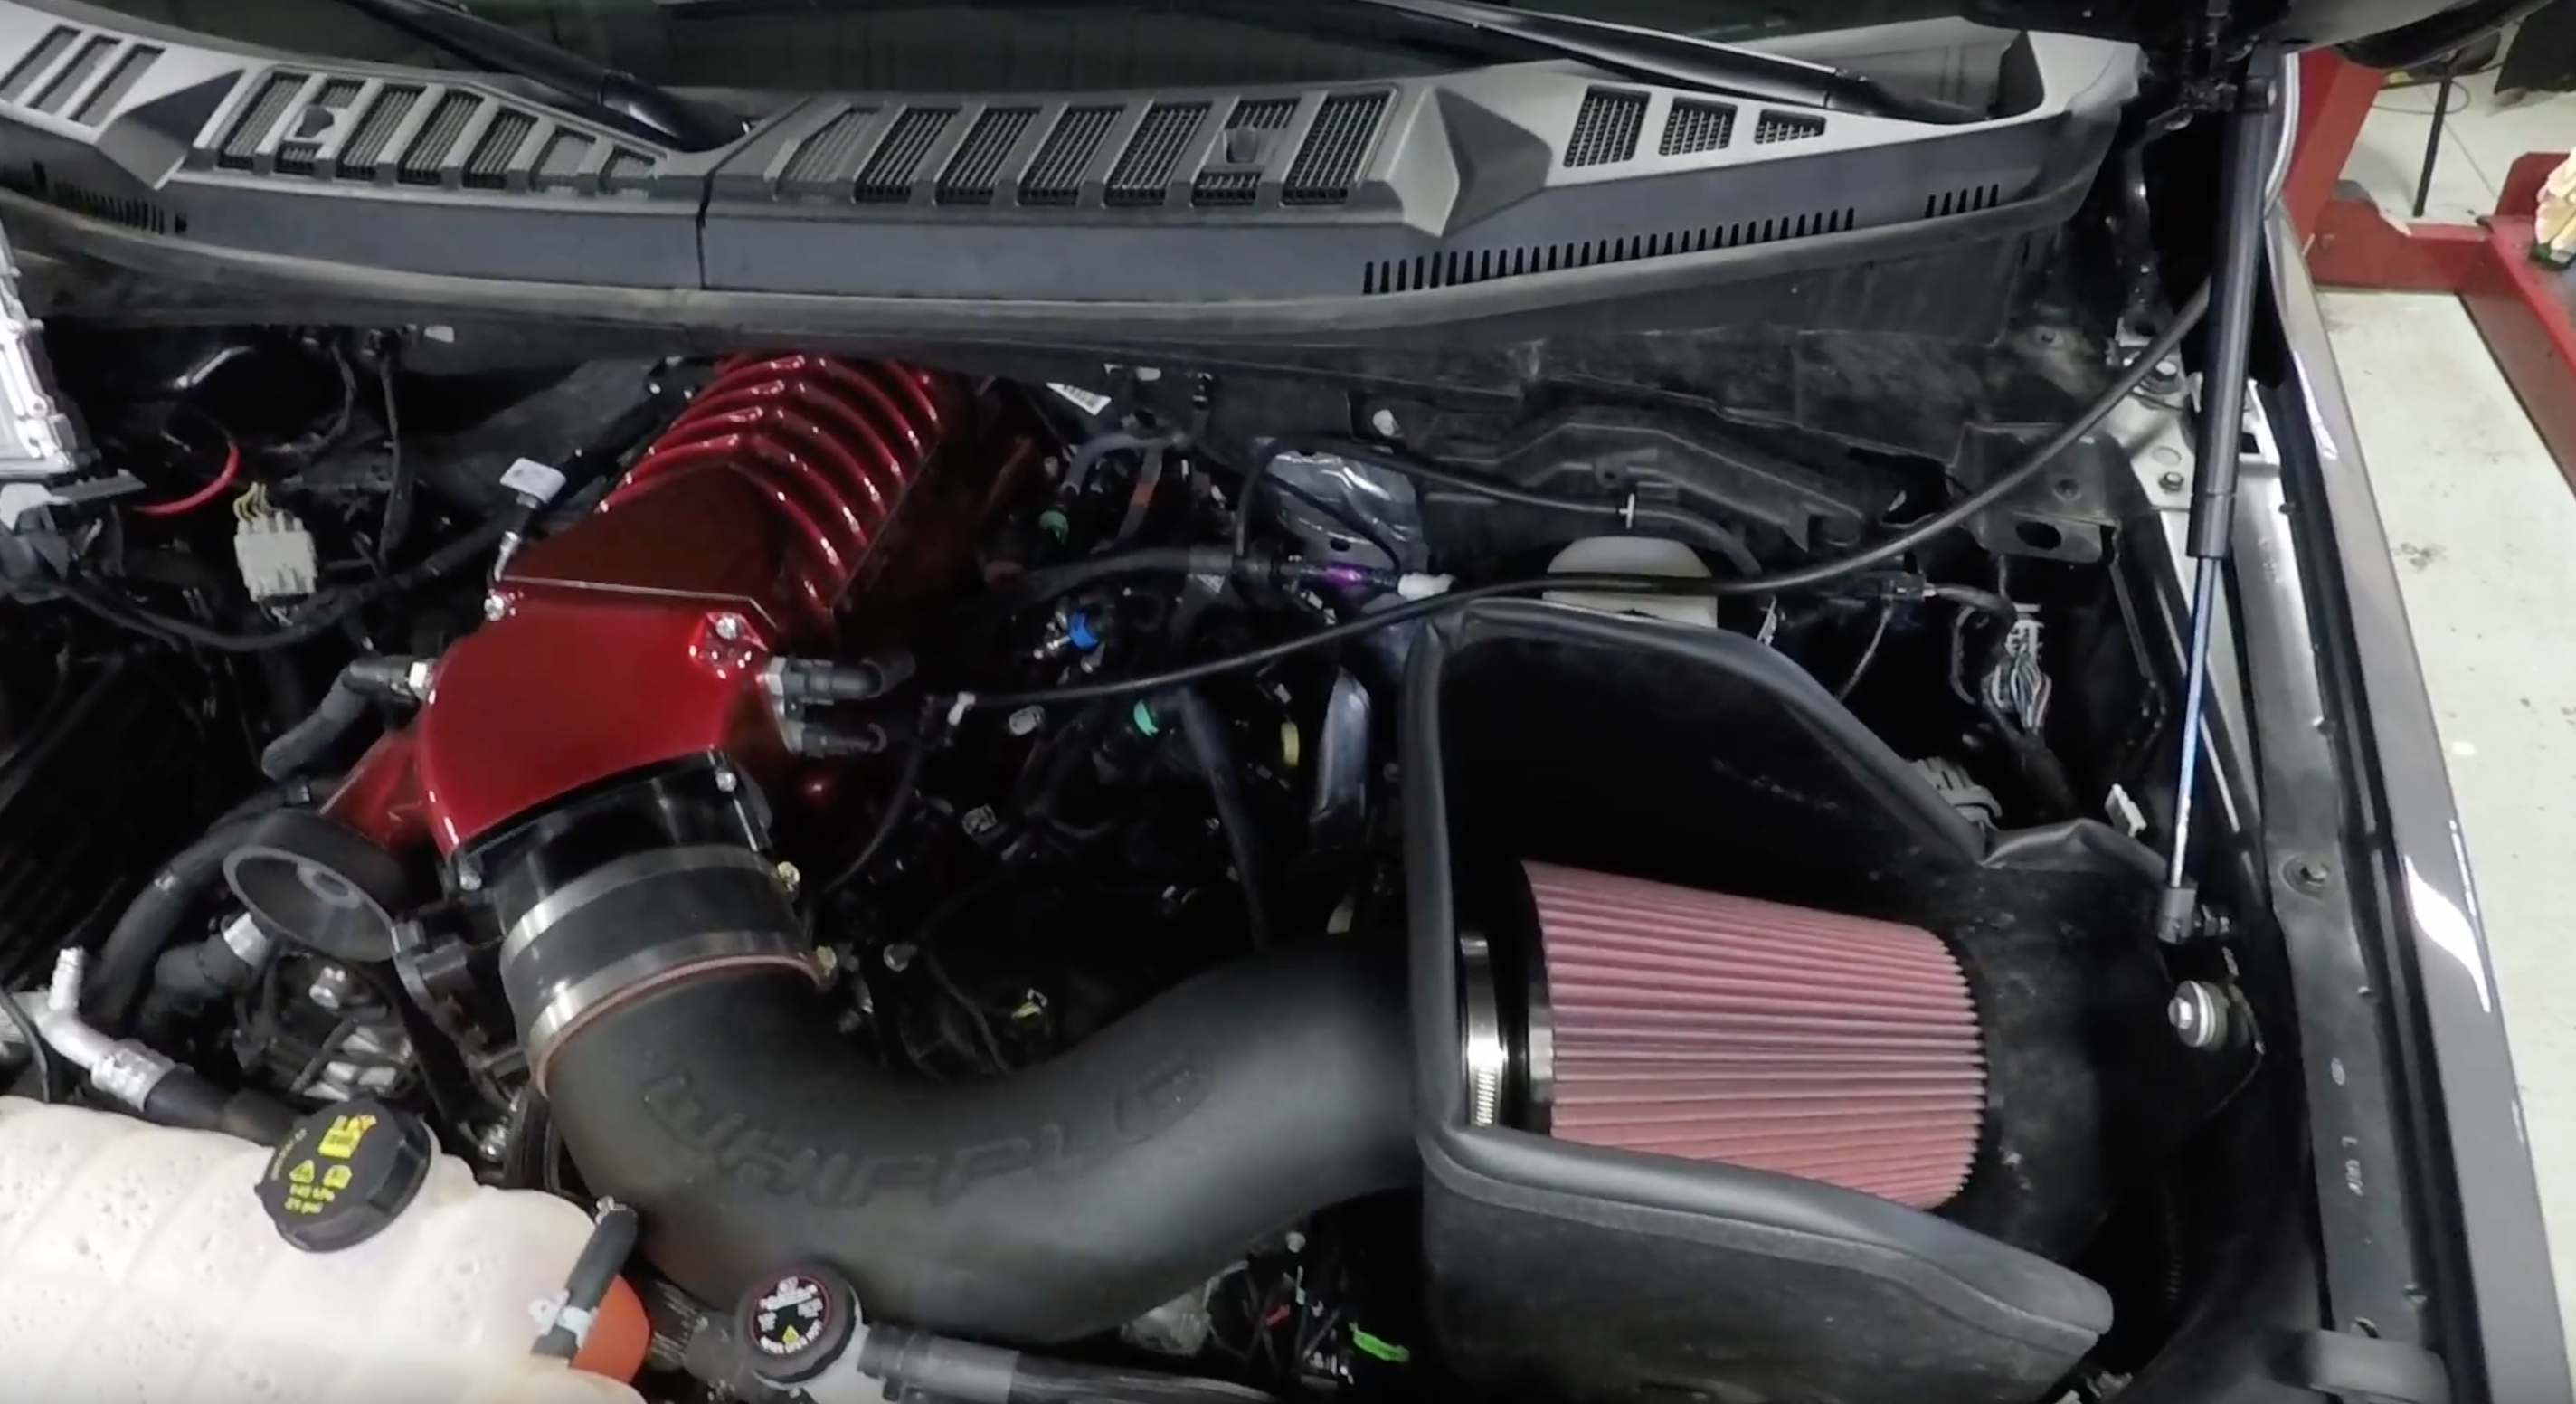 Video: 2018 F-150 gets nearly double horsepower from Whipple